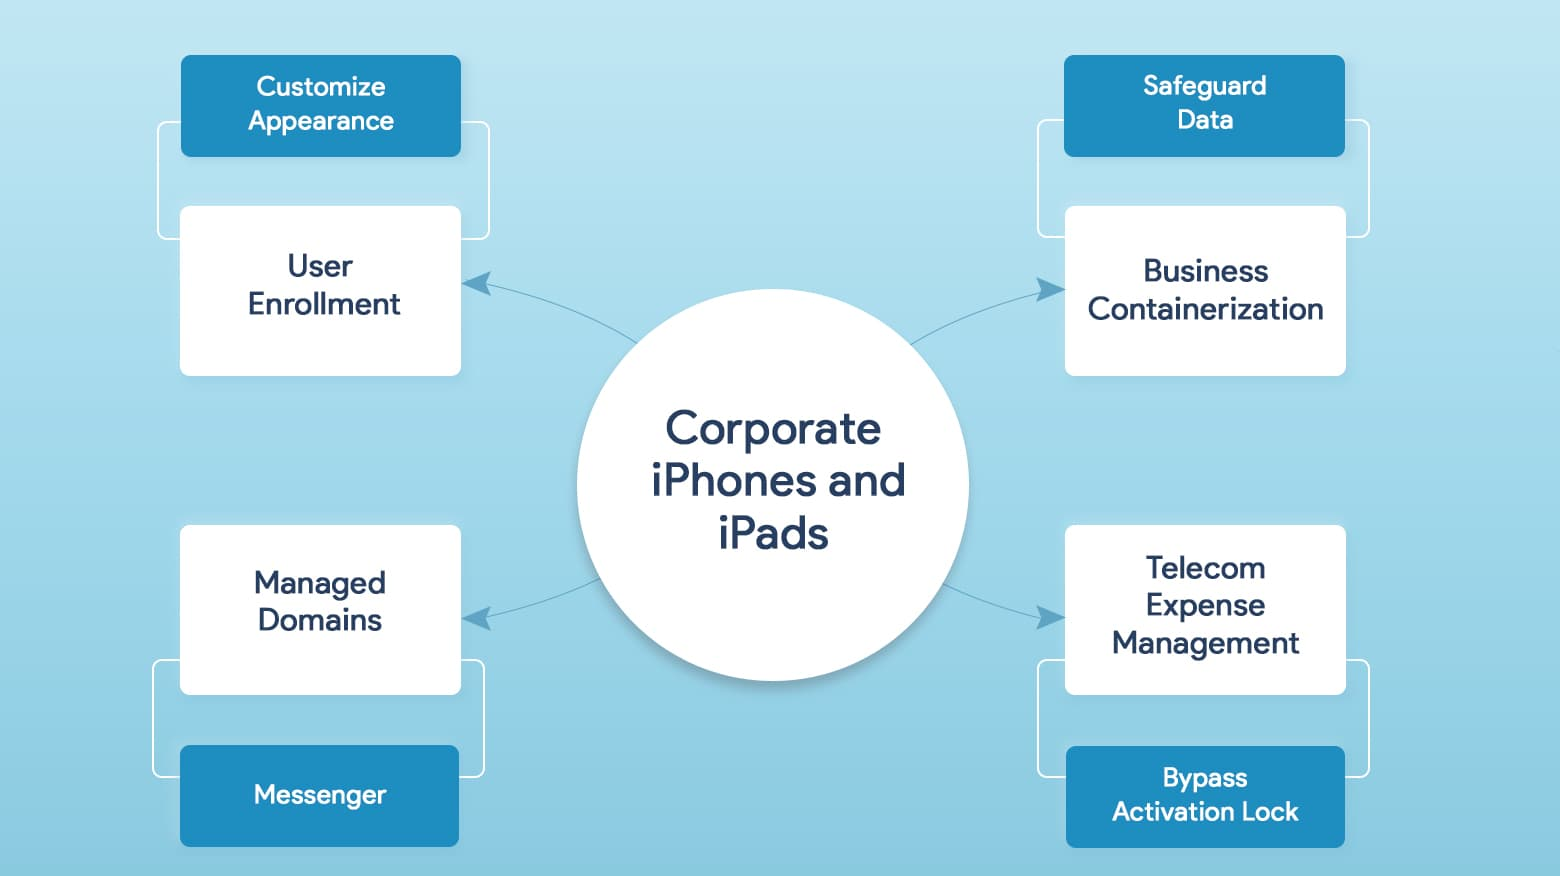 Take control of iPhones and iPads you've issued to employees with powerful MDM tools.